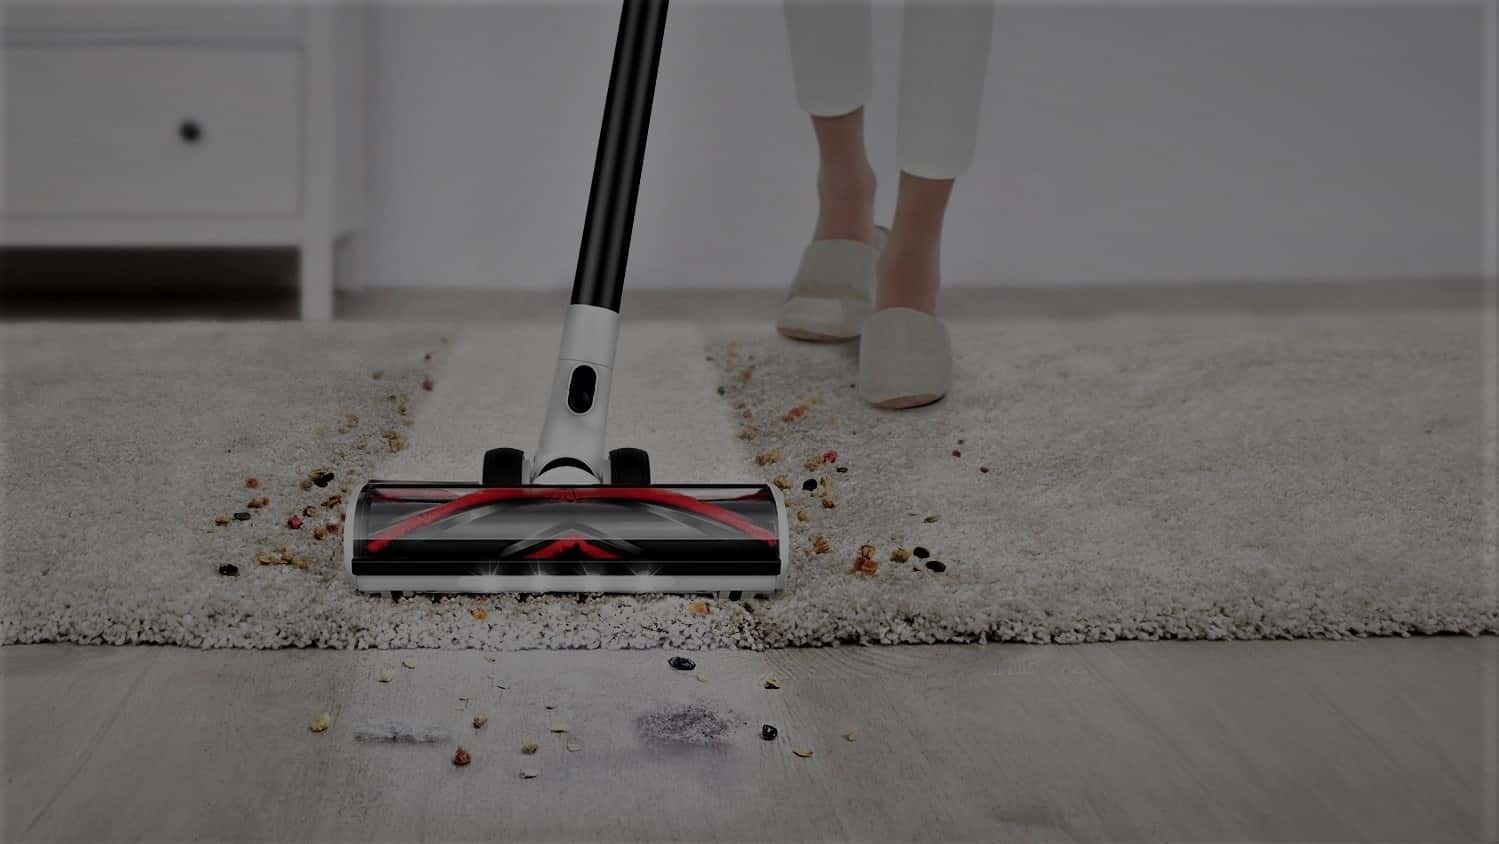 cleaning-debris-medical-office-janitorial-leads-pro